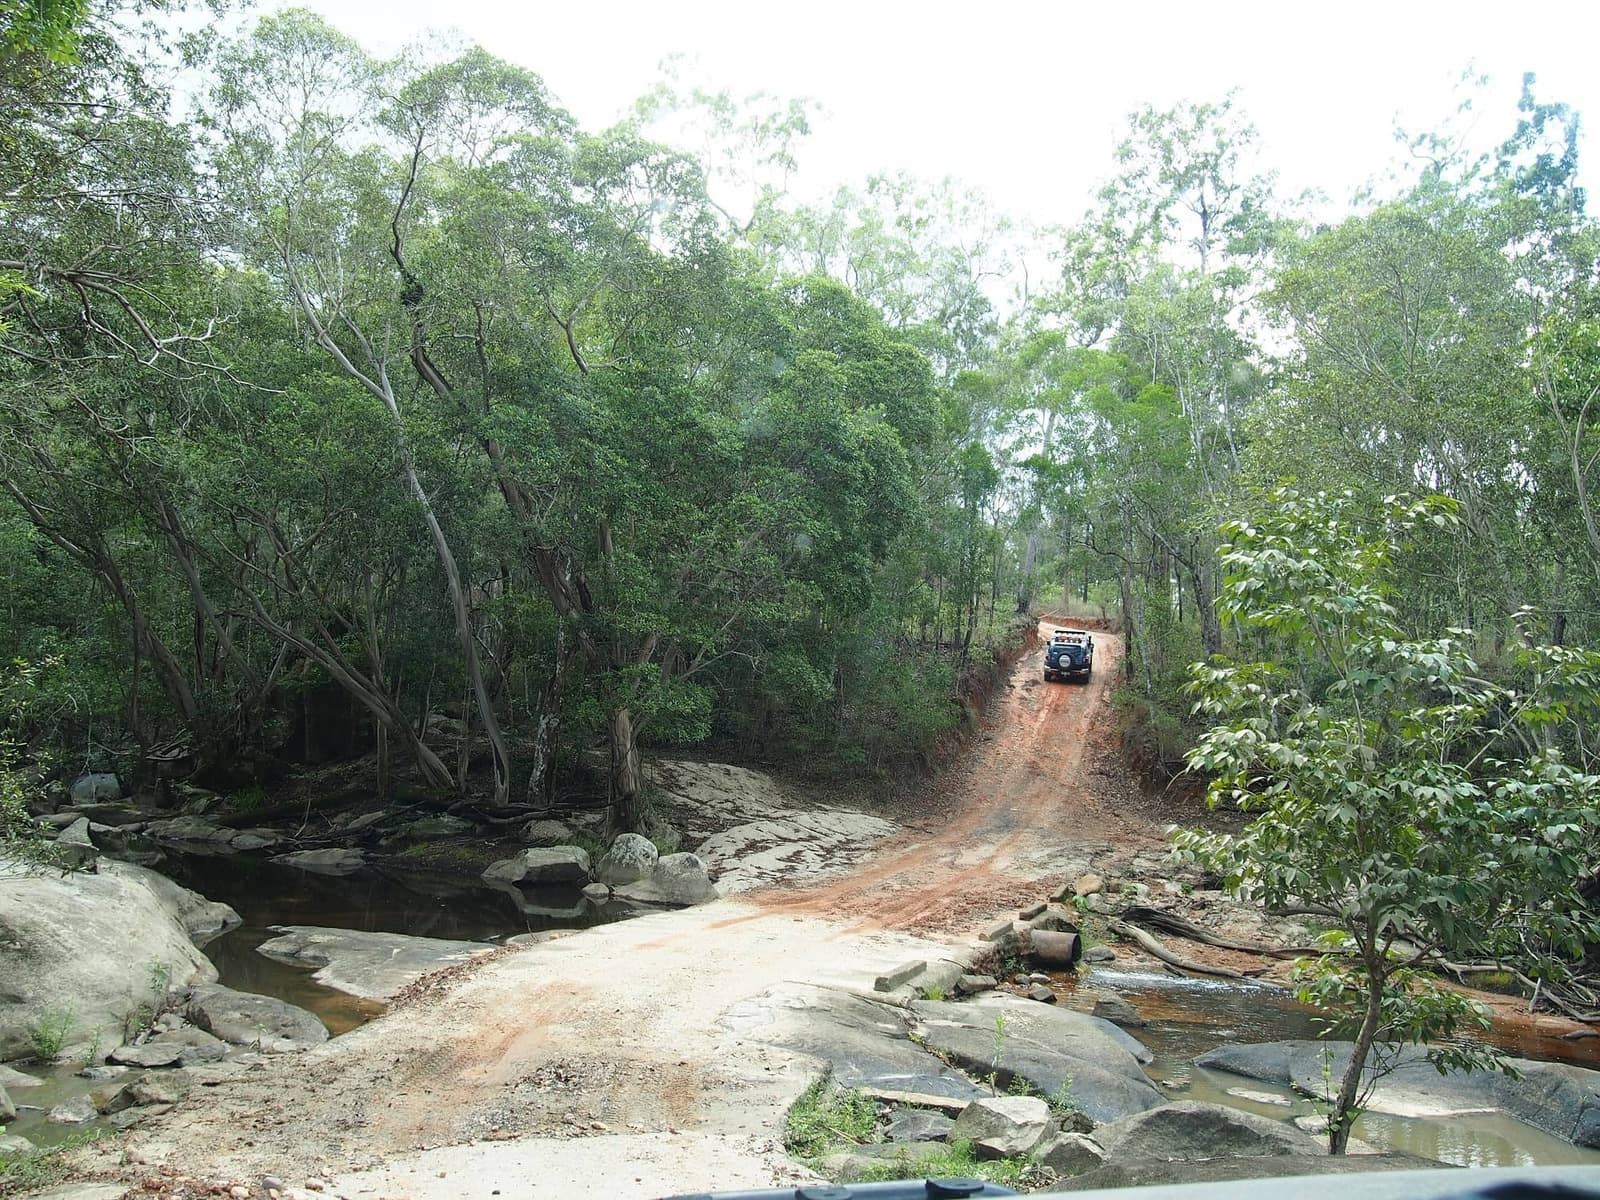 The CREB Track is considered one of Australia's most spectacular 4WD experiences